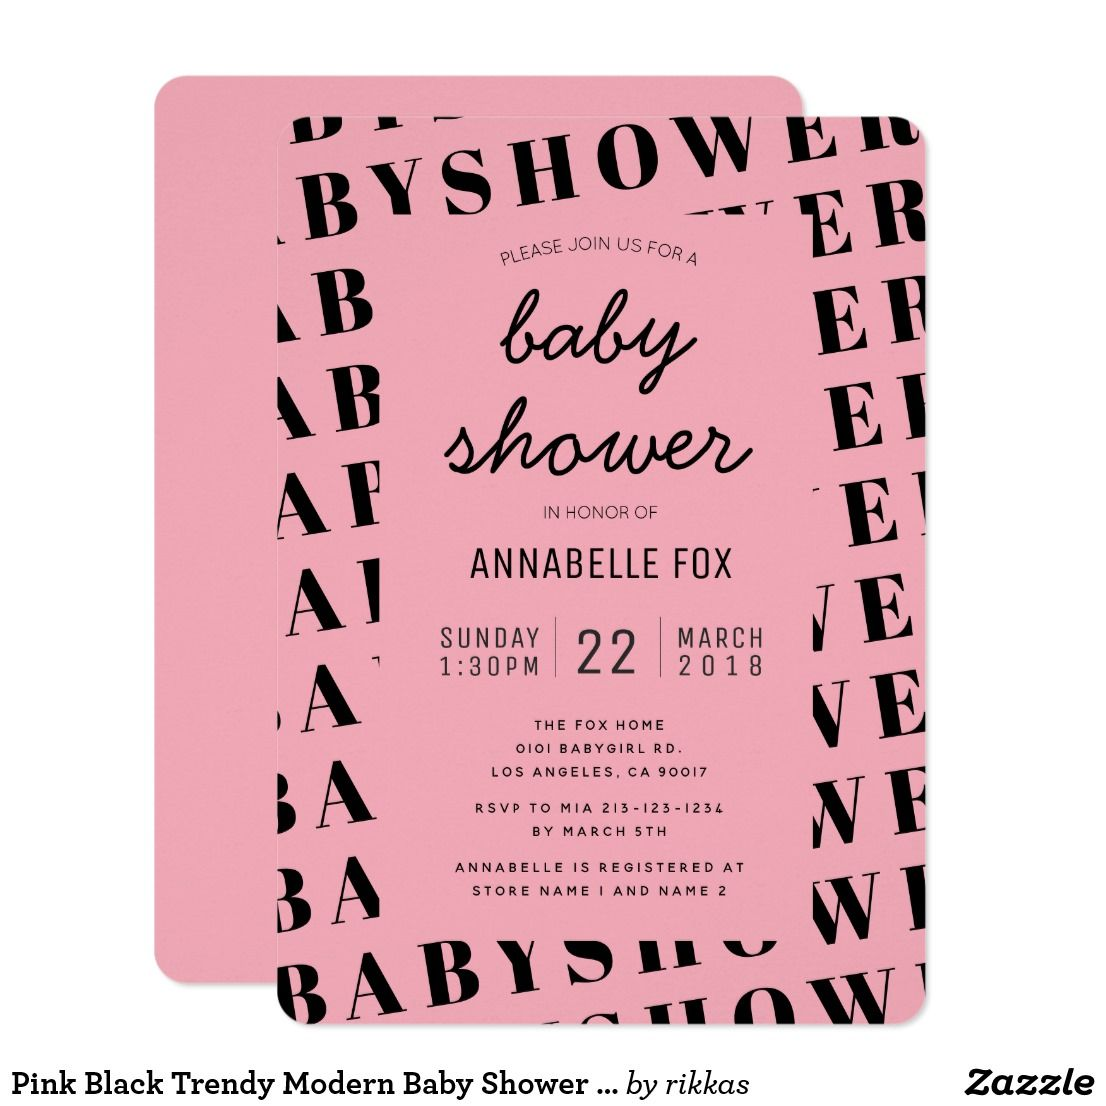 Pink Black Trendy Modern Baby Shower Invitation | Design | Pinterest ...